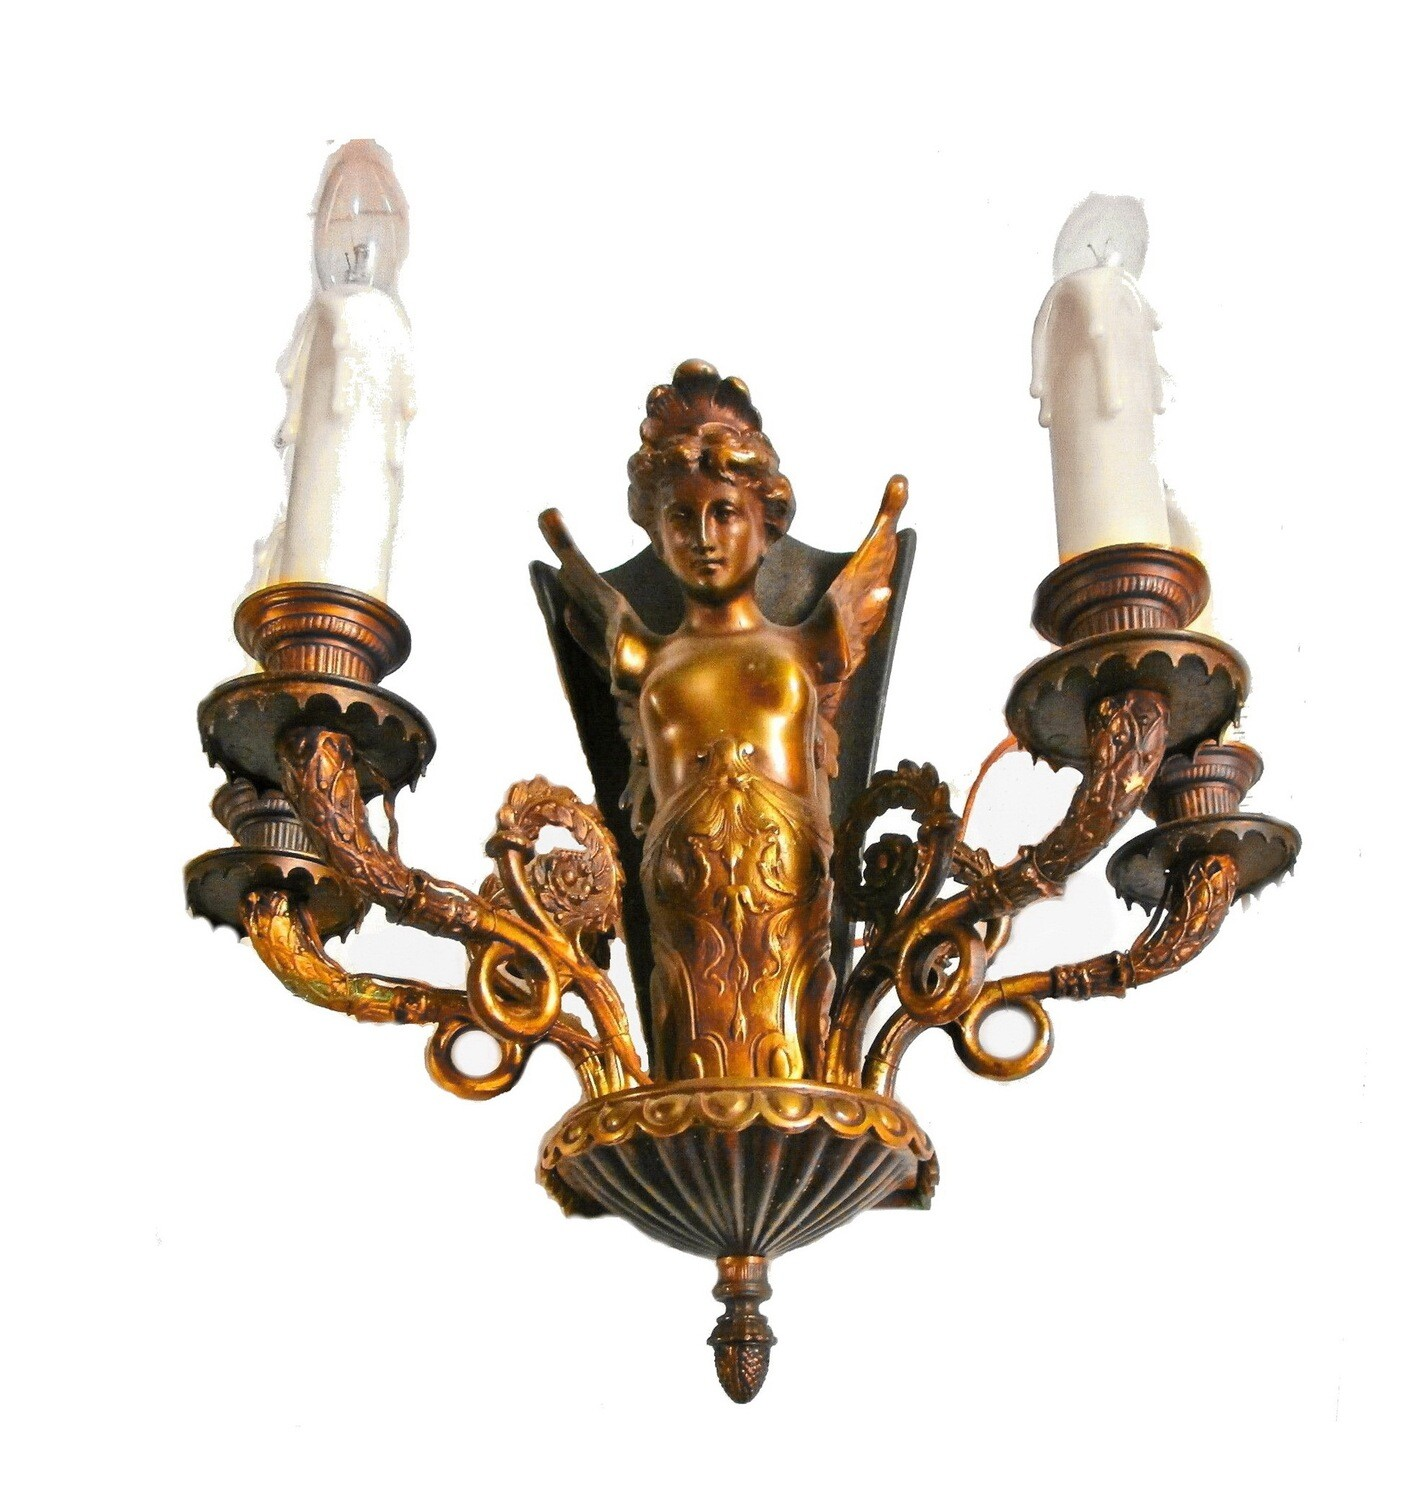 2 Antique Art Nouveau 4 Arm Winged Siren Wall Sconces